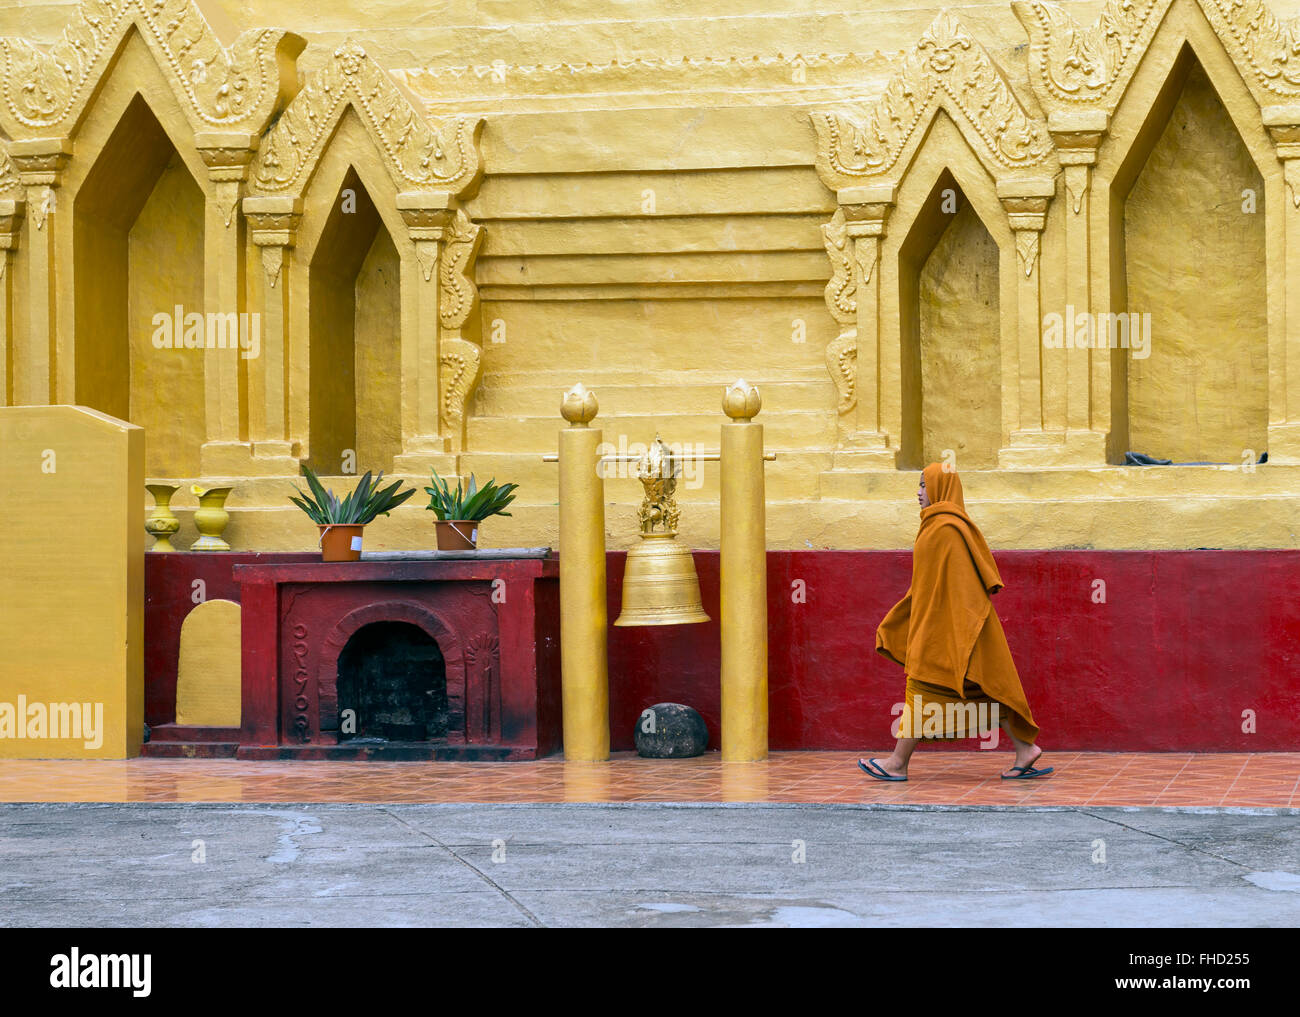 Monk in temple, Burma - Stock Image